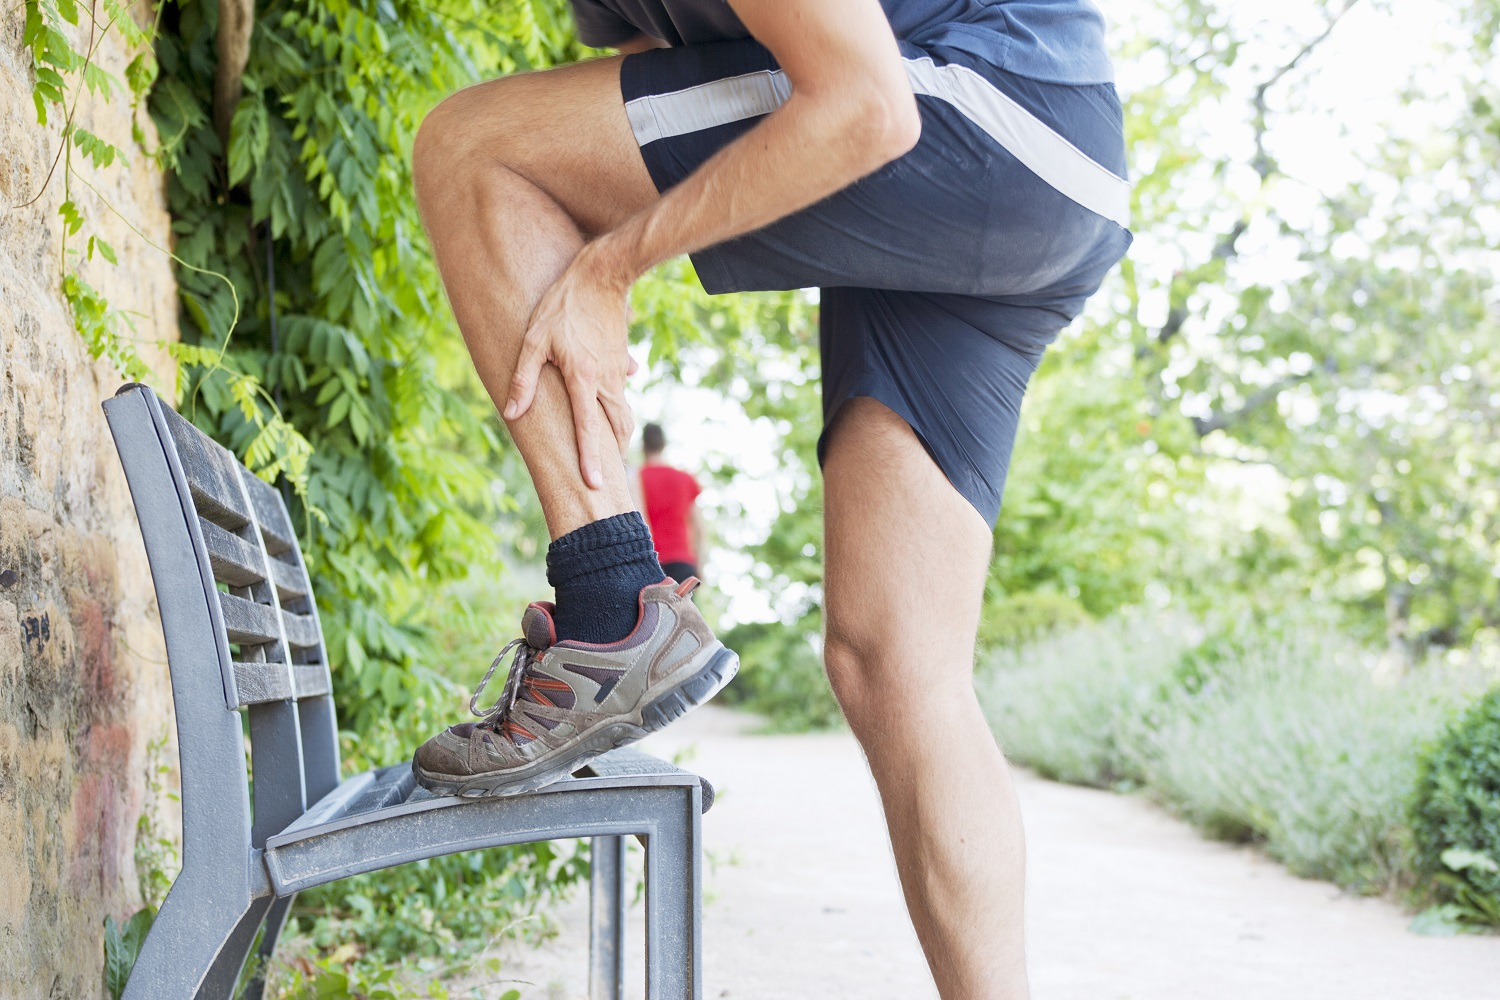 The importance of drinking water before, during and after exercise 2